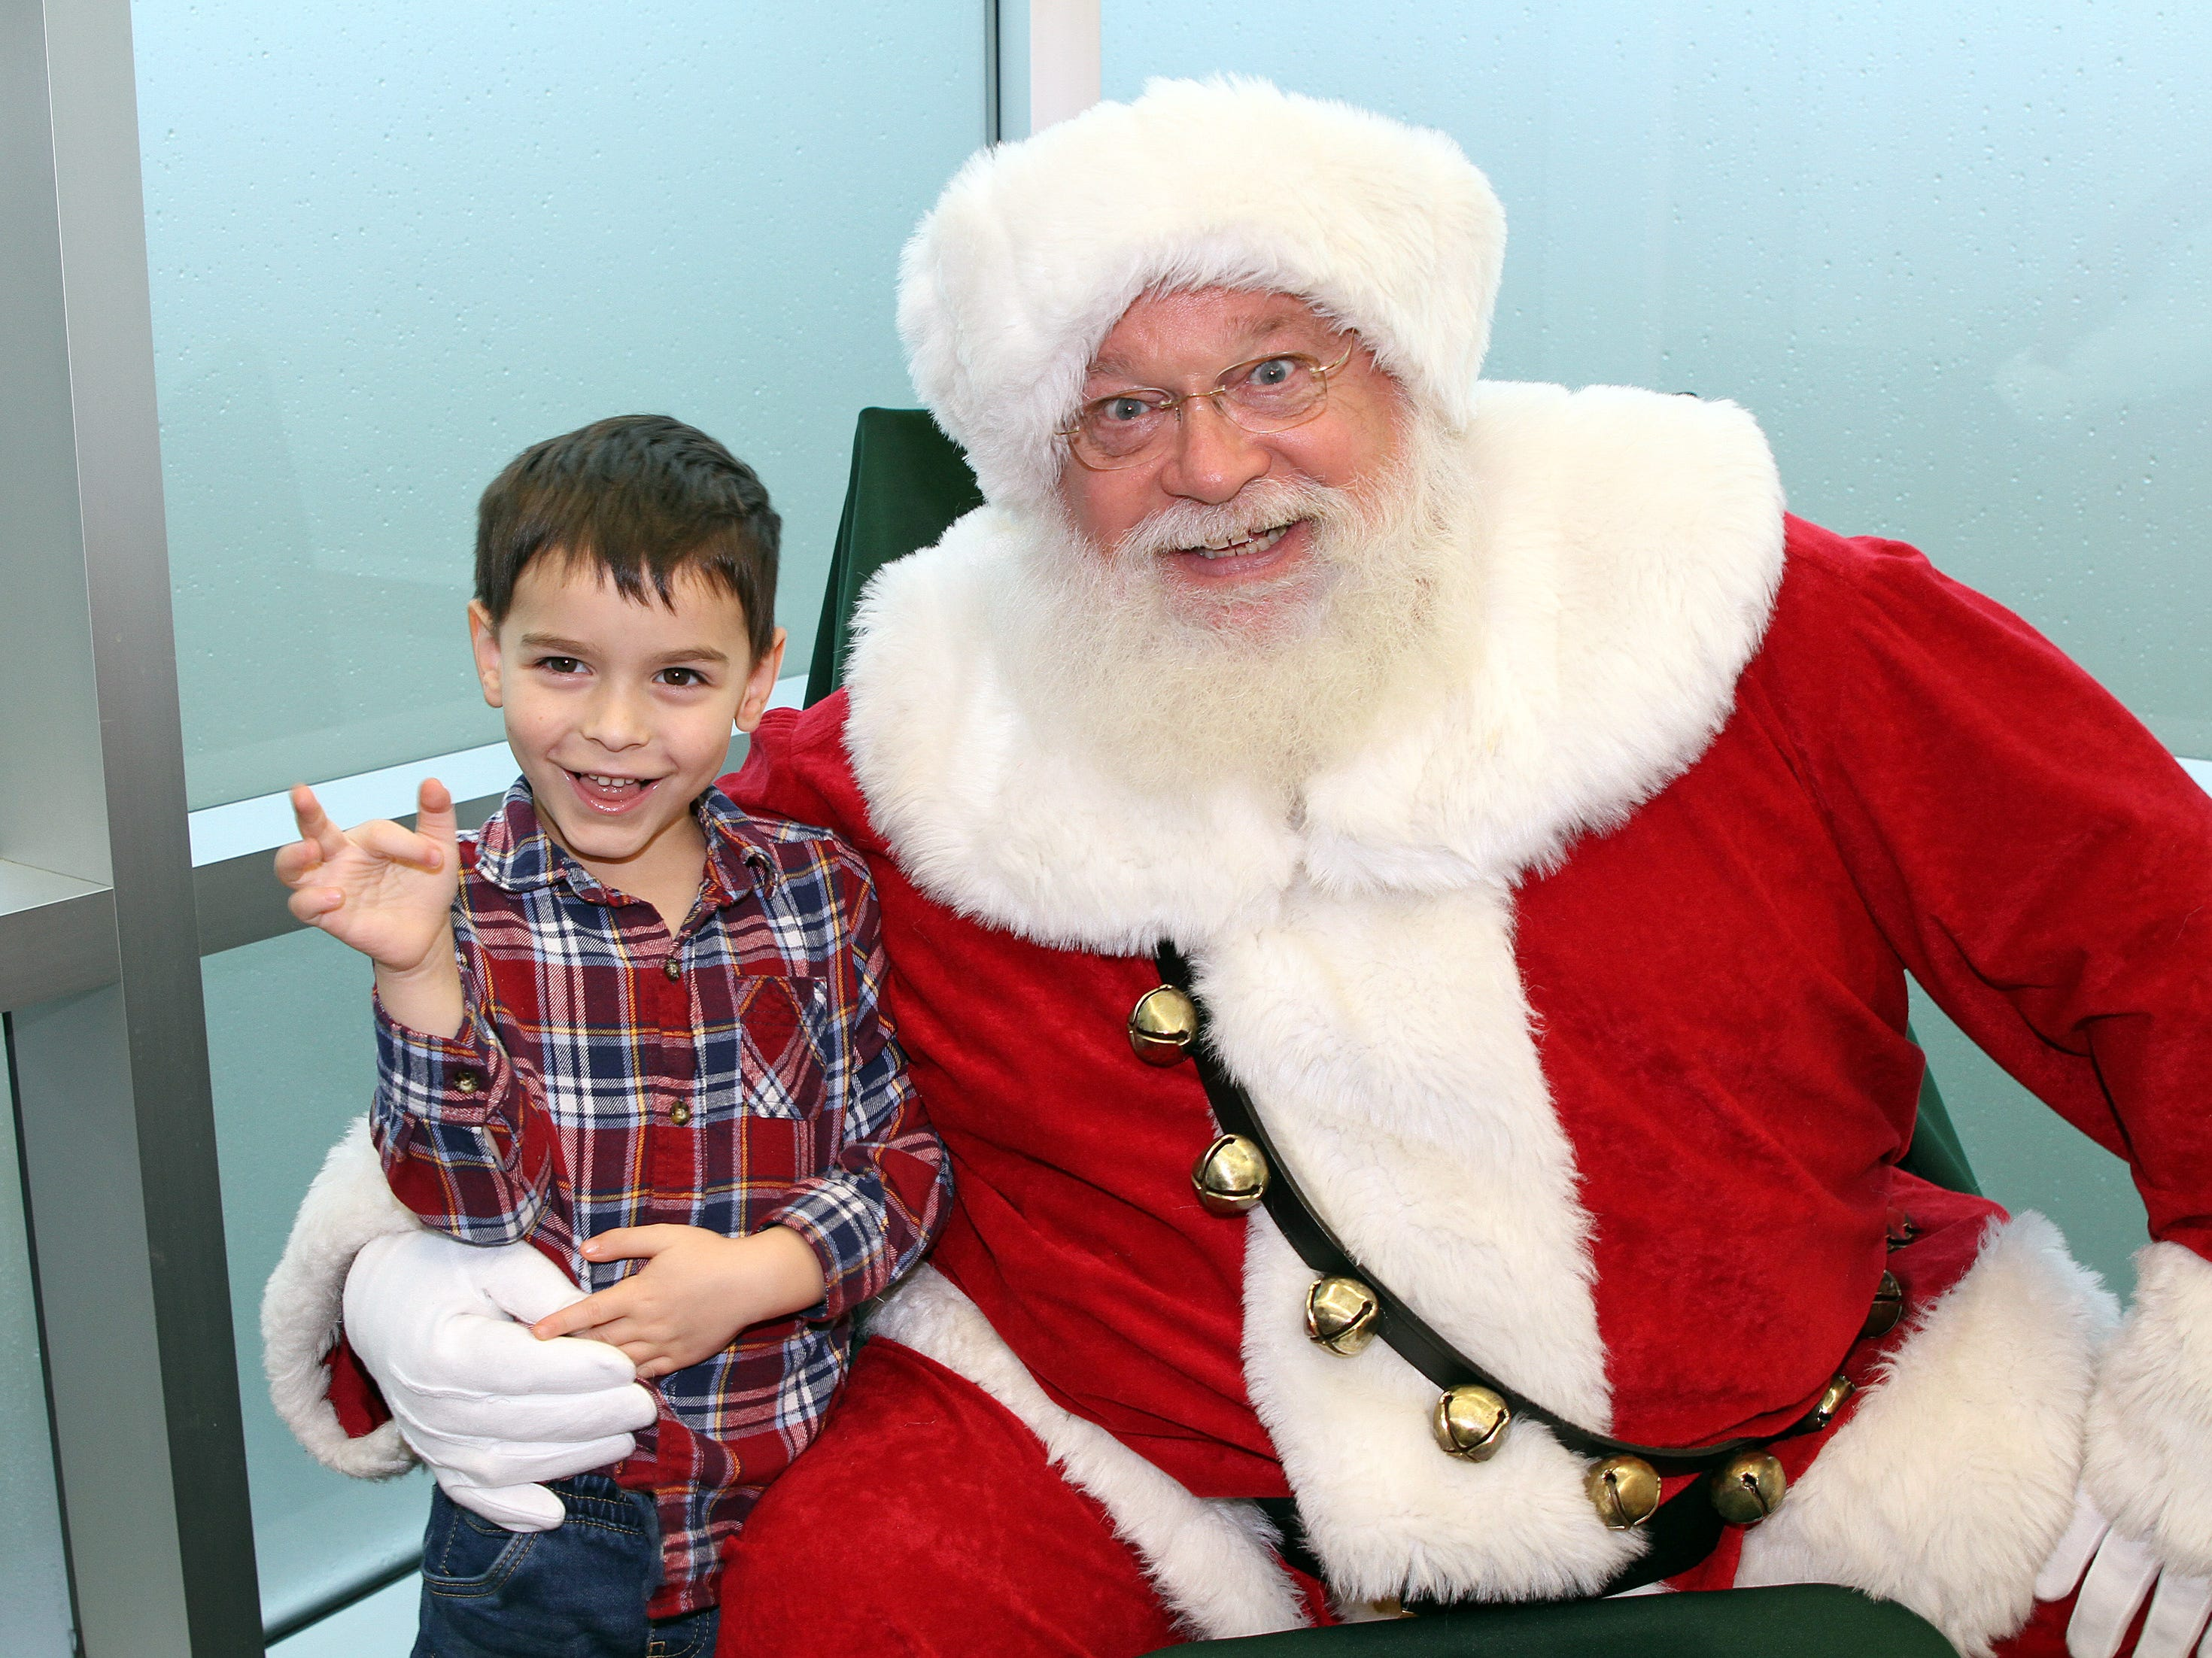 Lance Oliver, 5, of Johnston stops for a photo with Santa during Holidays in Johnston on Saturday, Dec. 1, 2018 at the Johnston Public Library featuring a gingerbread house contest, cookie decorating, holiday music performed by the Johnston Middle School Ninth Grade Chamber Choir, story time and Santa.